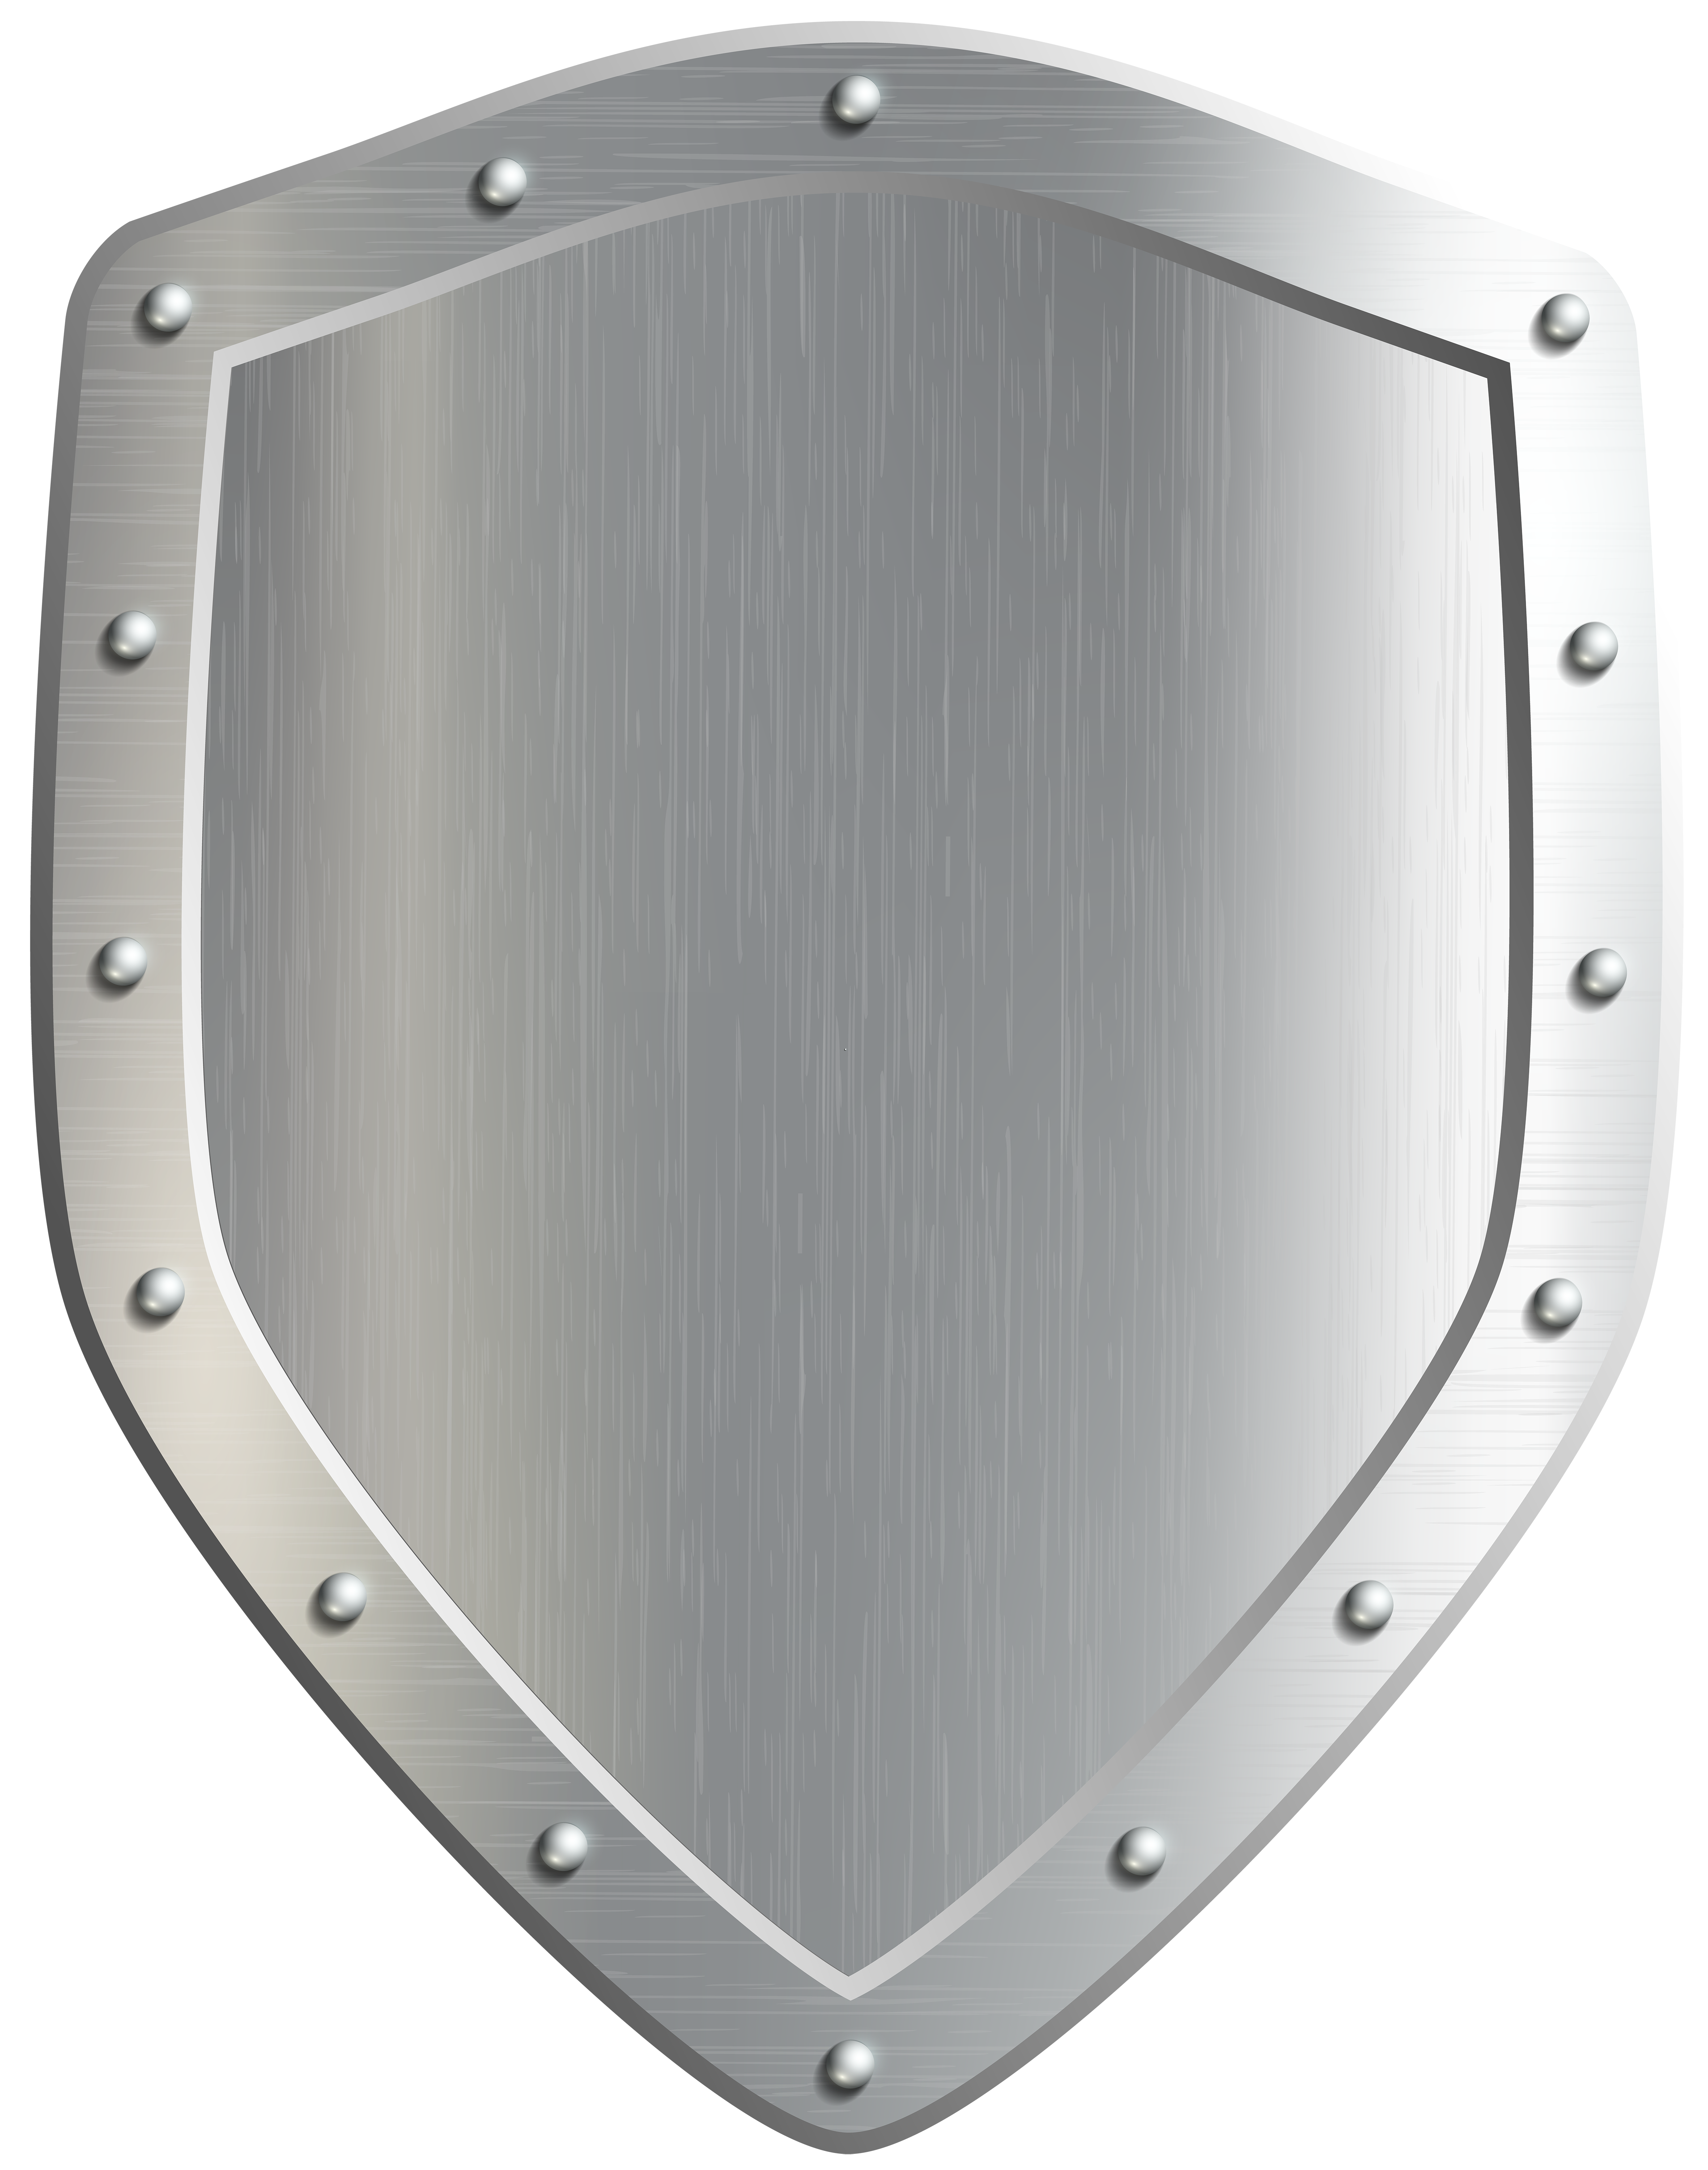 Shield Badge PNG Clip Art Image.